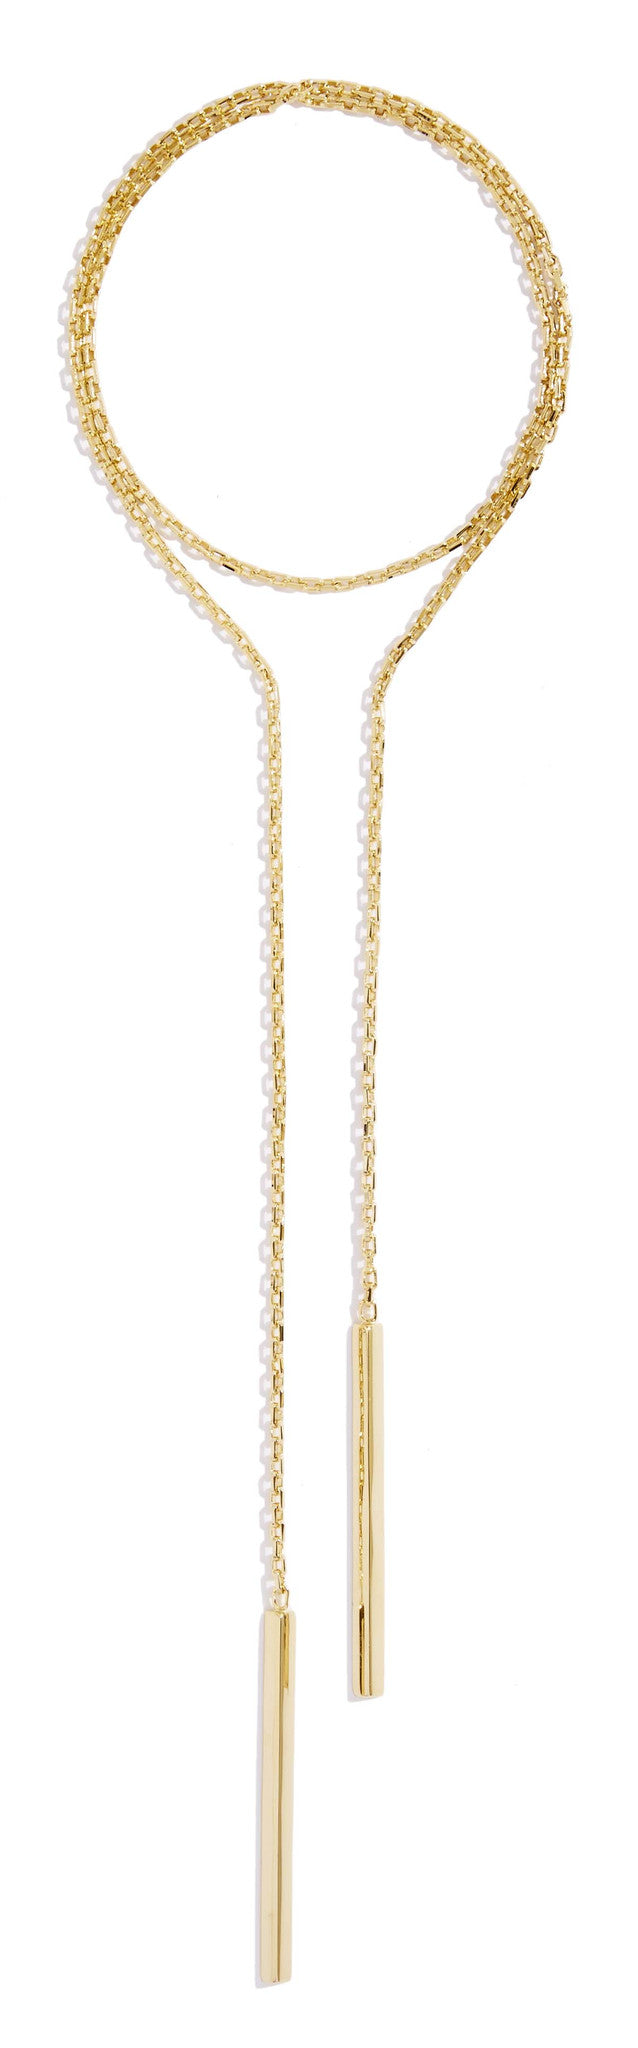 Gold Ingot Lariat by Sarah Magid Jewelry